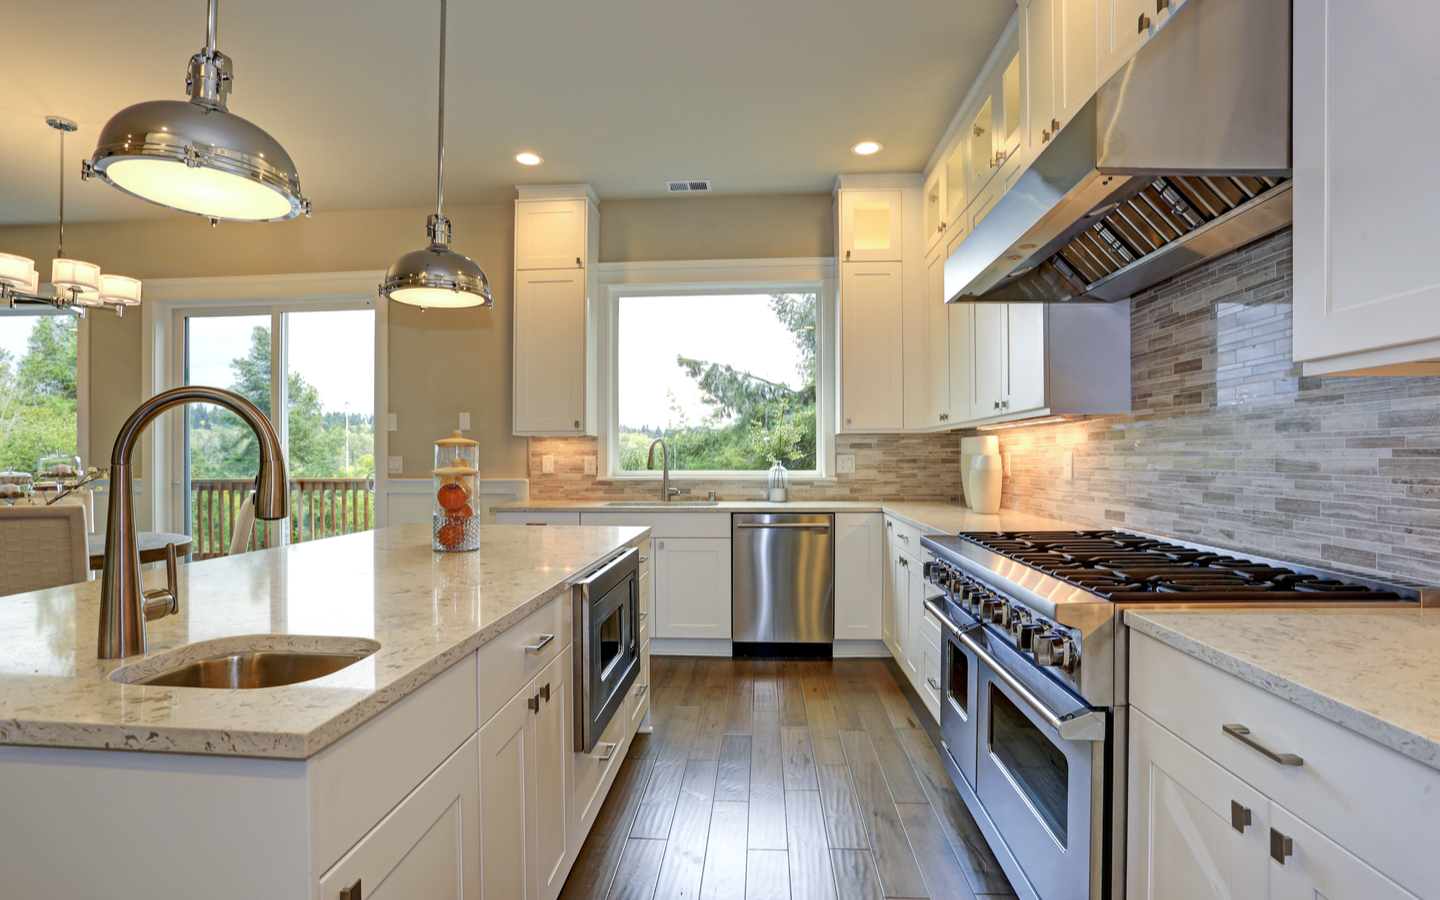 House Remodeling Ideas: Budget Friendly Ways To Renovate